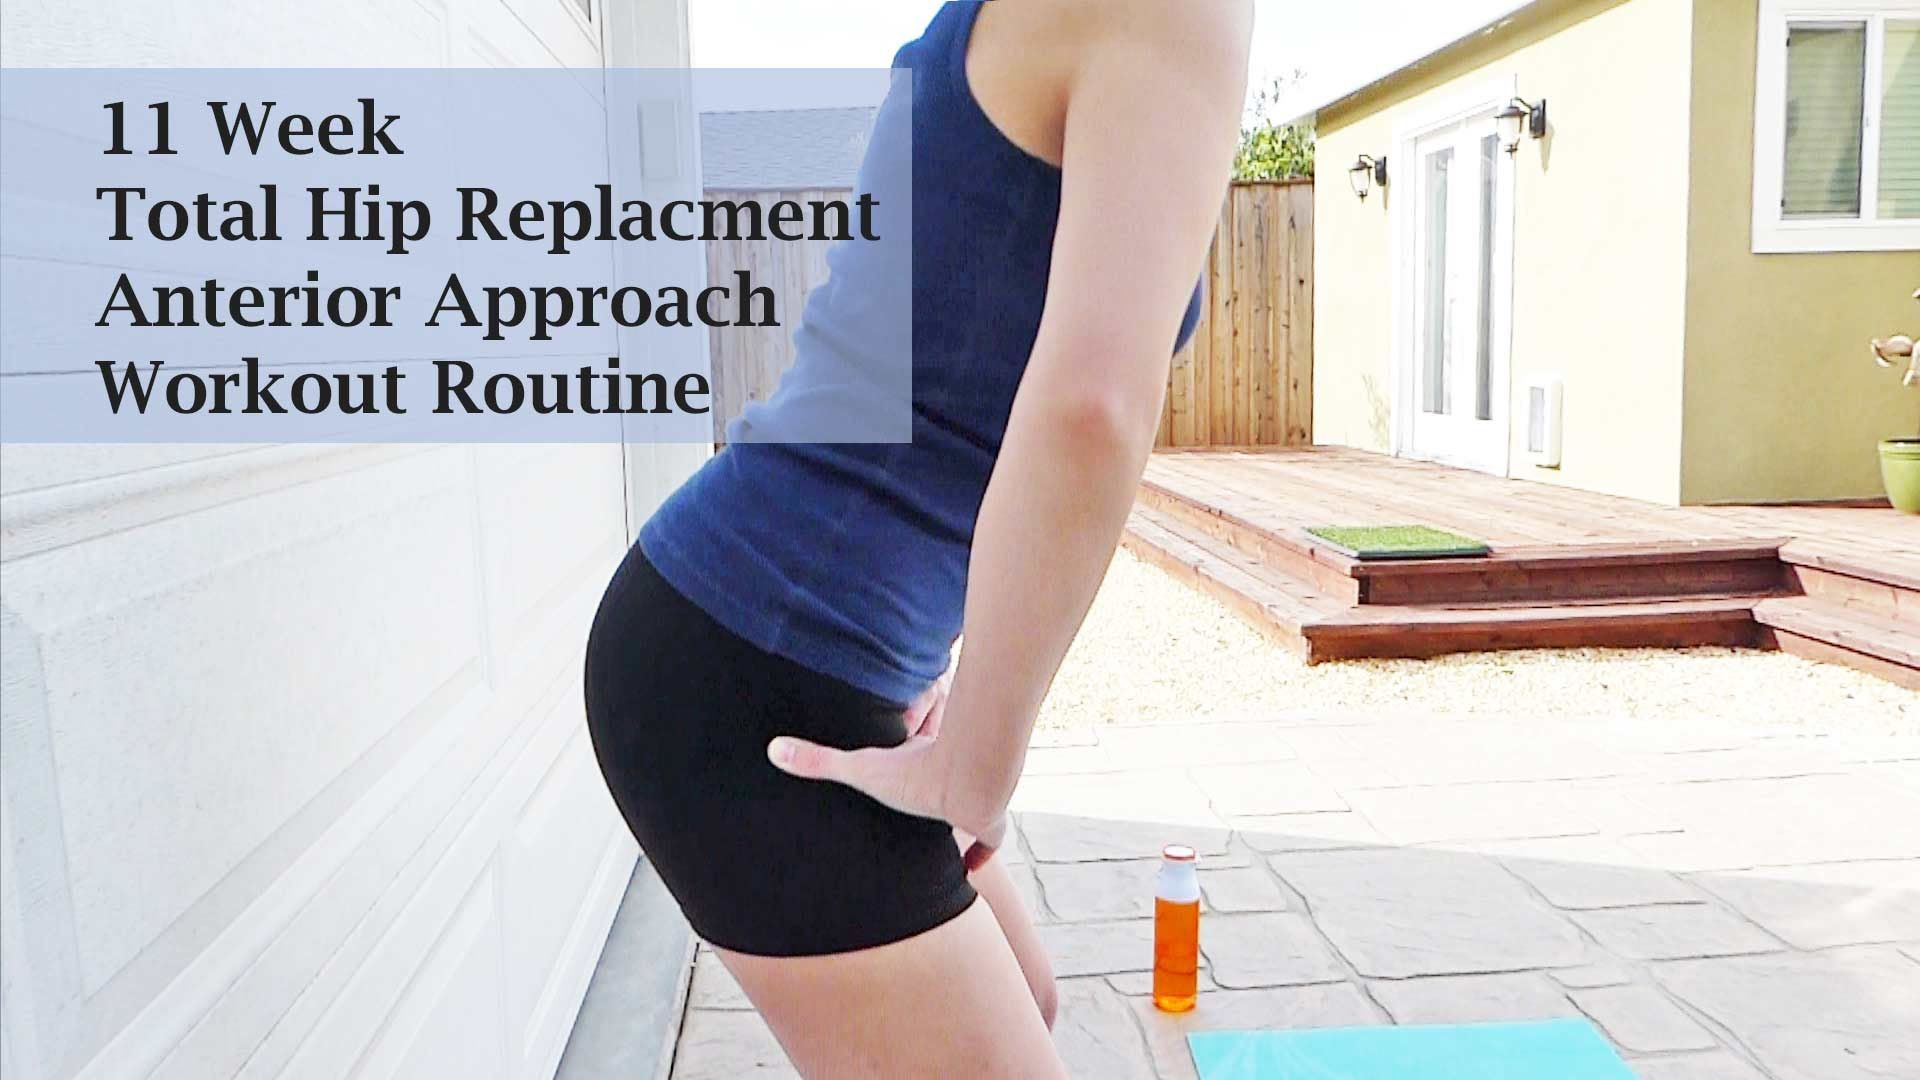 11 Week Post Hip Replacement Workout Youtube Exercise